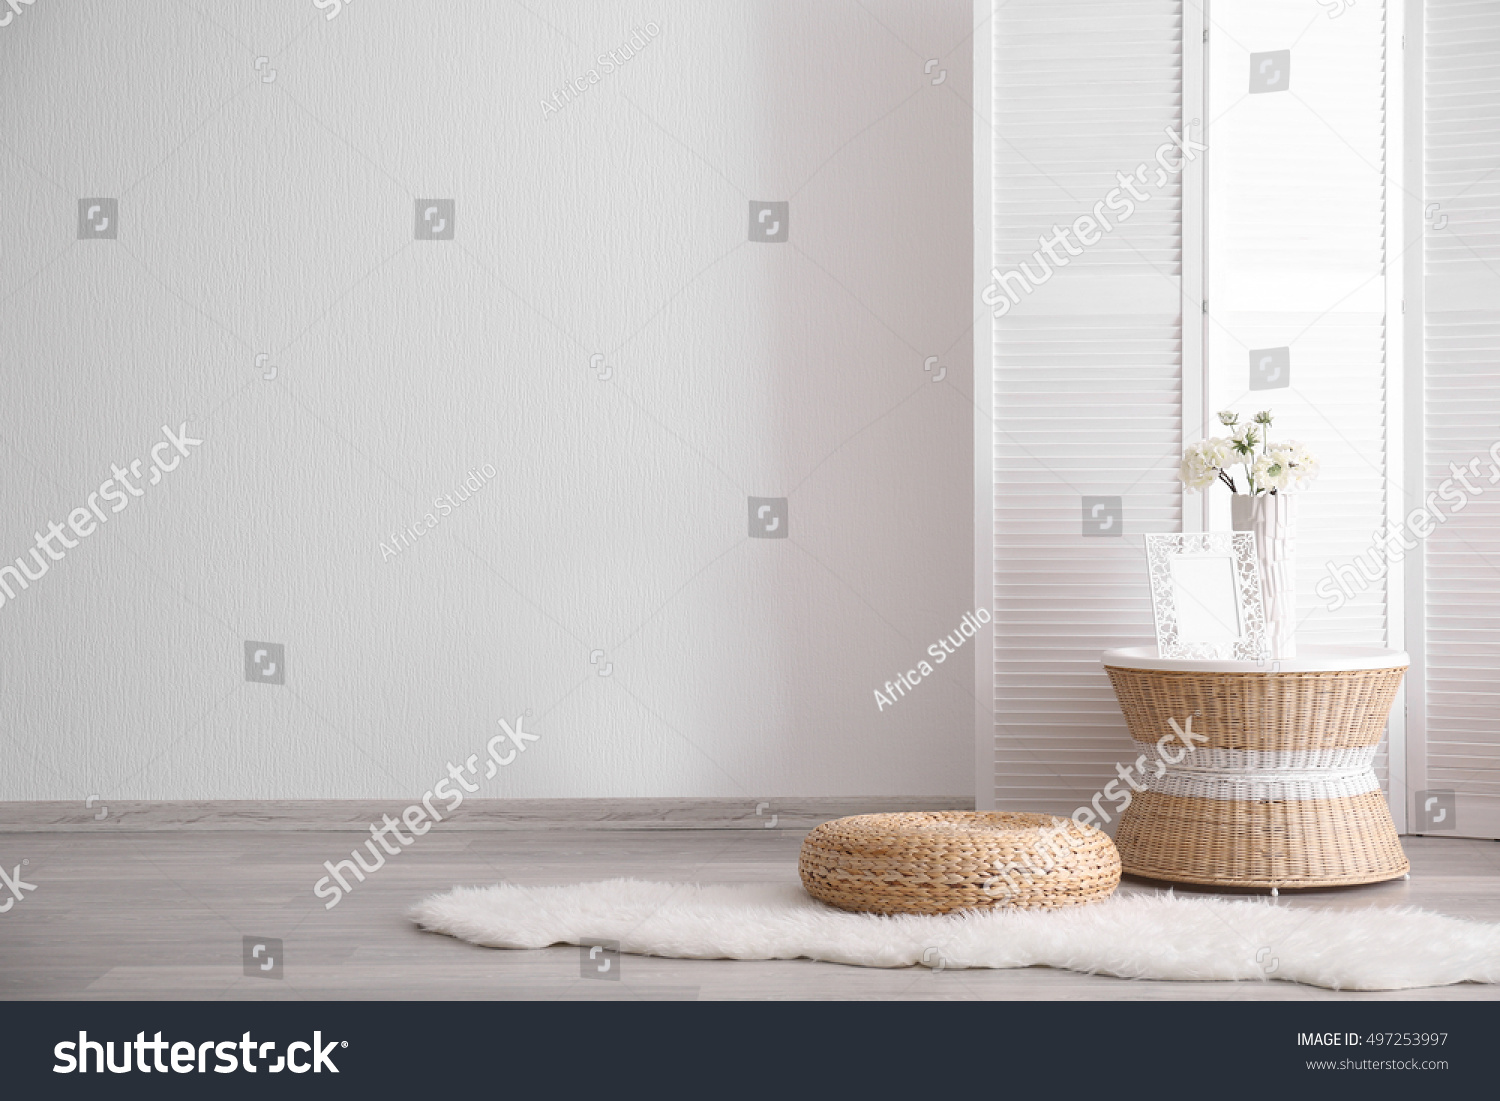 Room interior with white decorations and wicker furniture #497253997